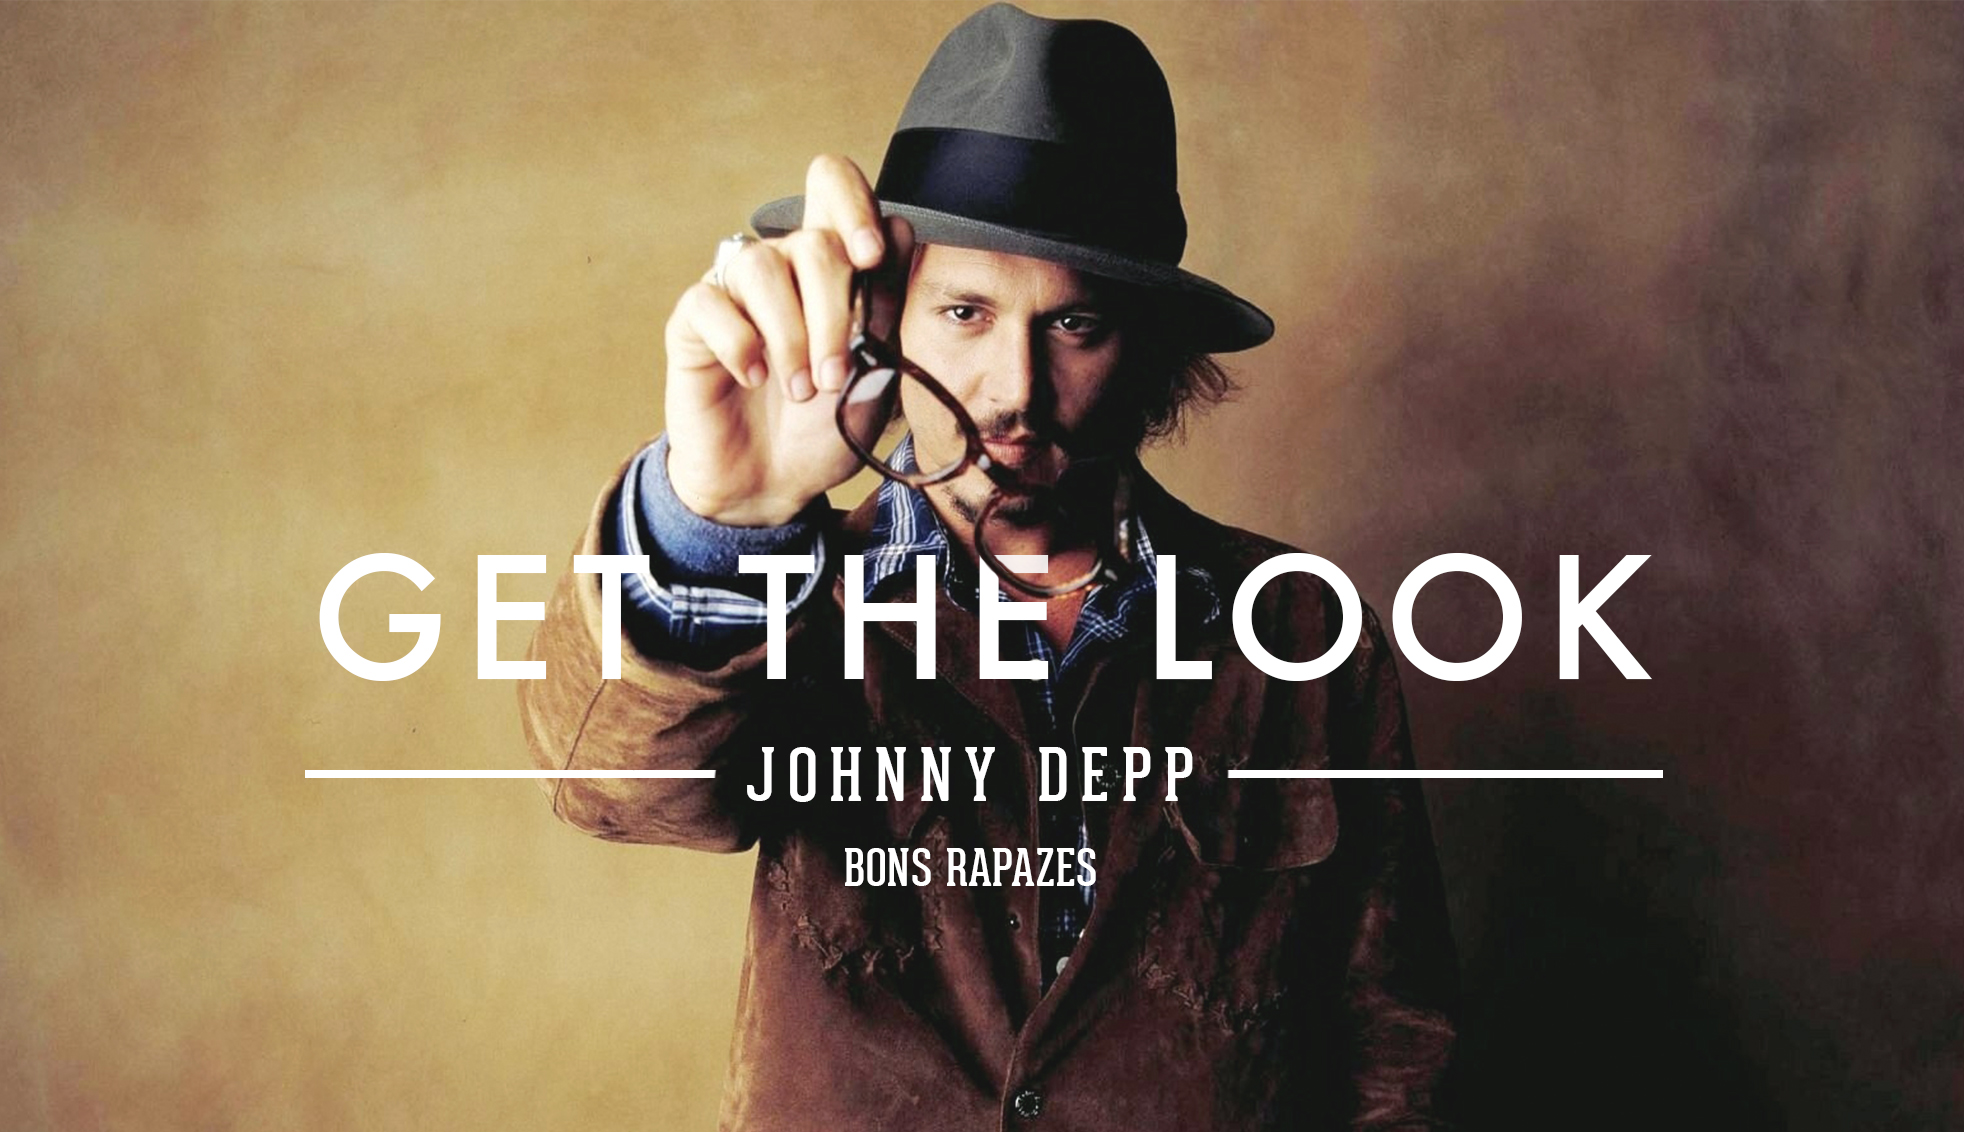 Bons Rapazes Get the Look Johnny Depp